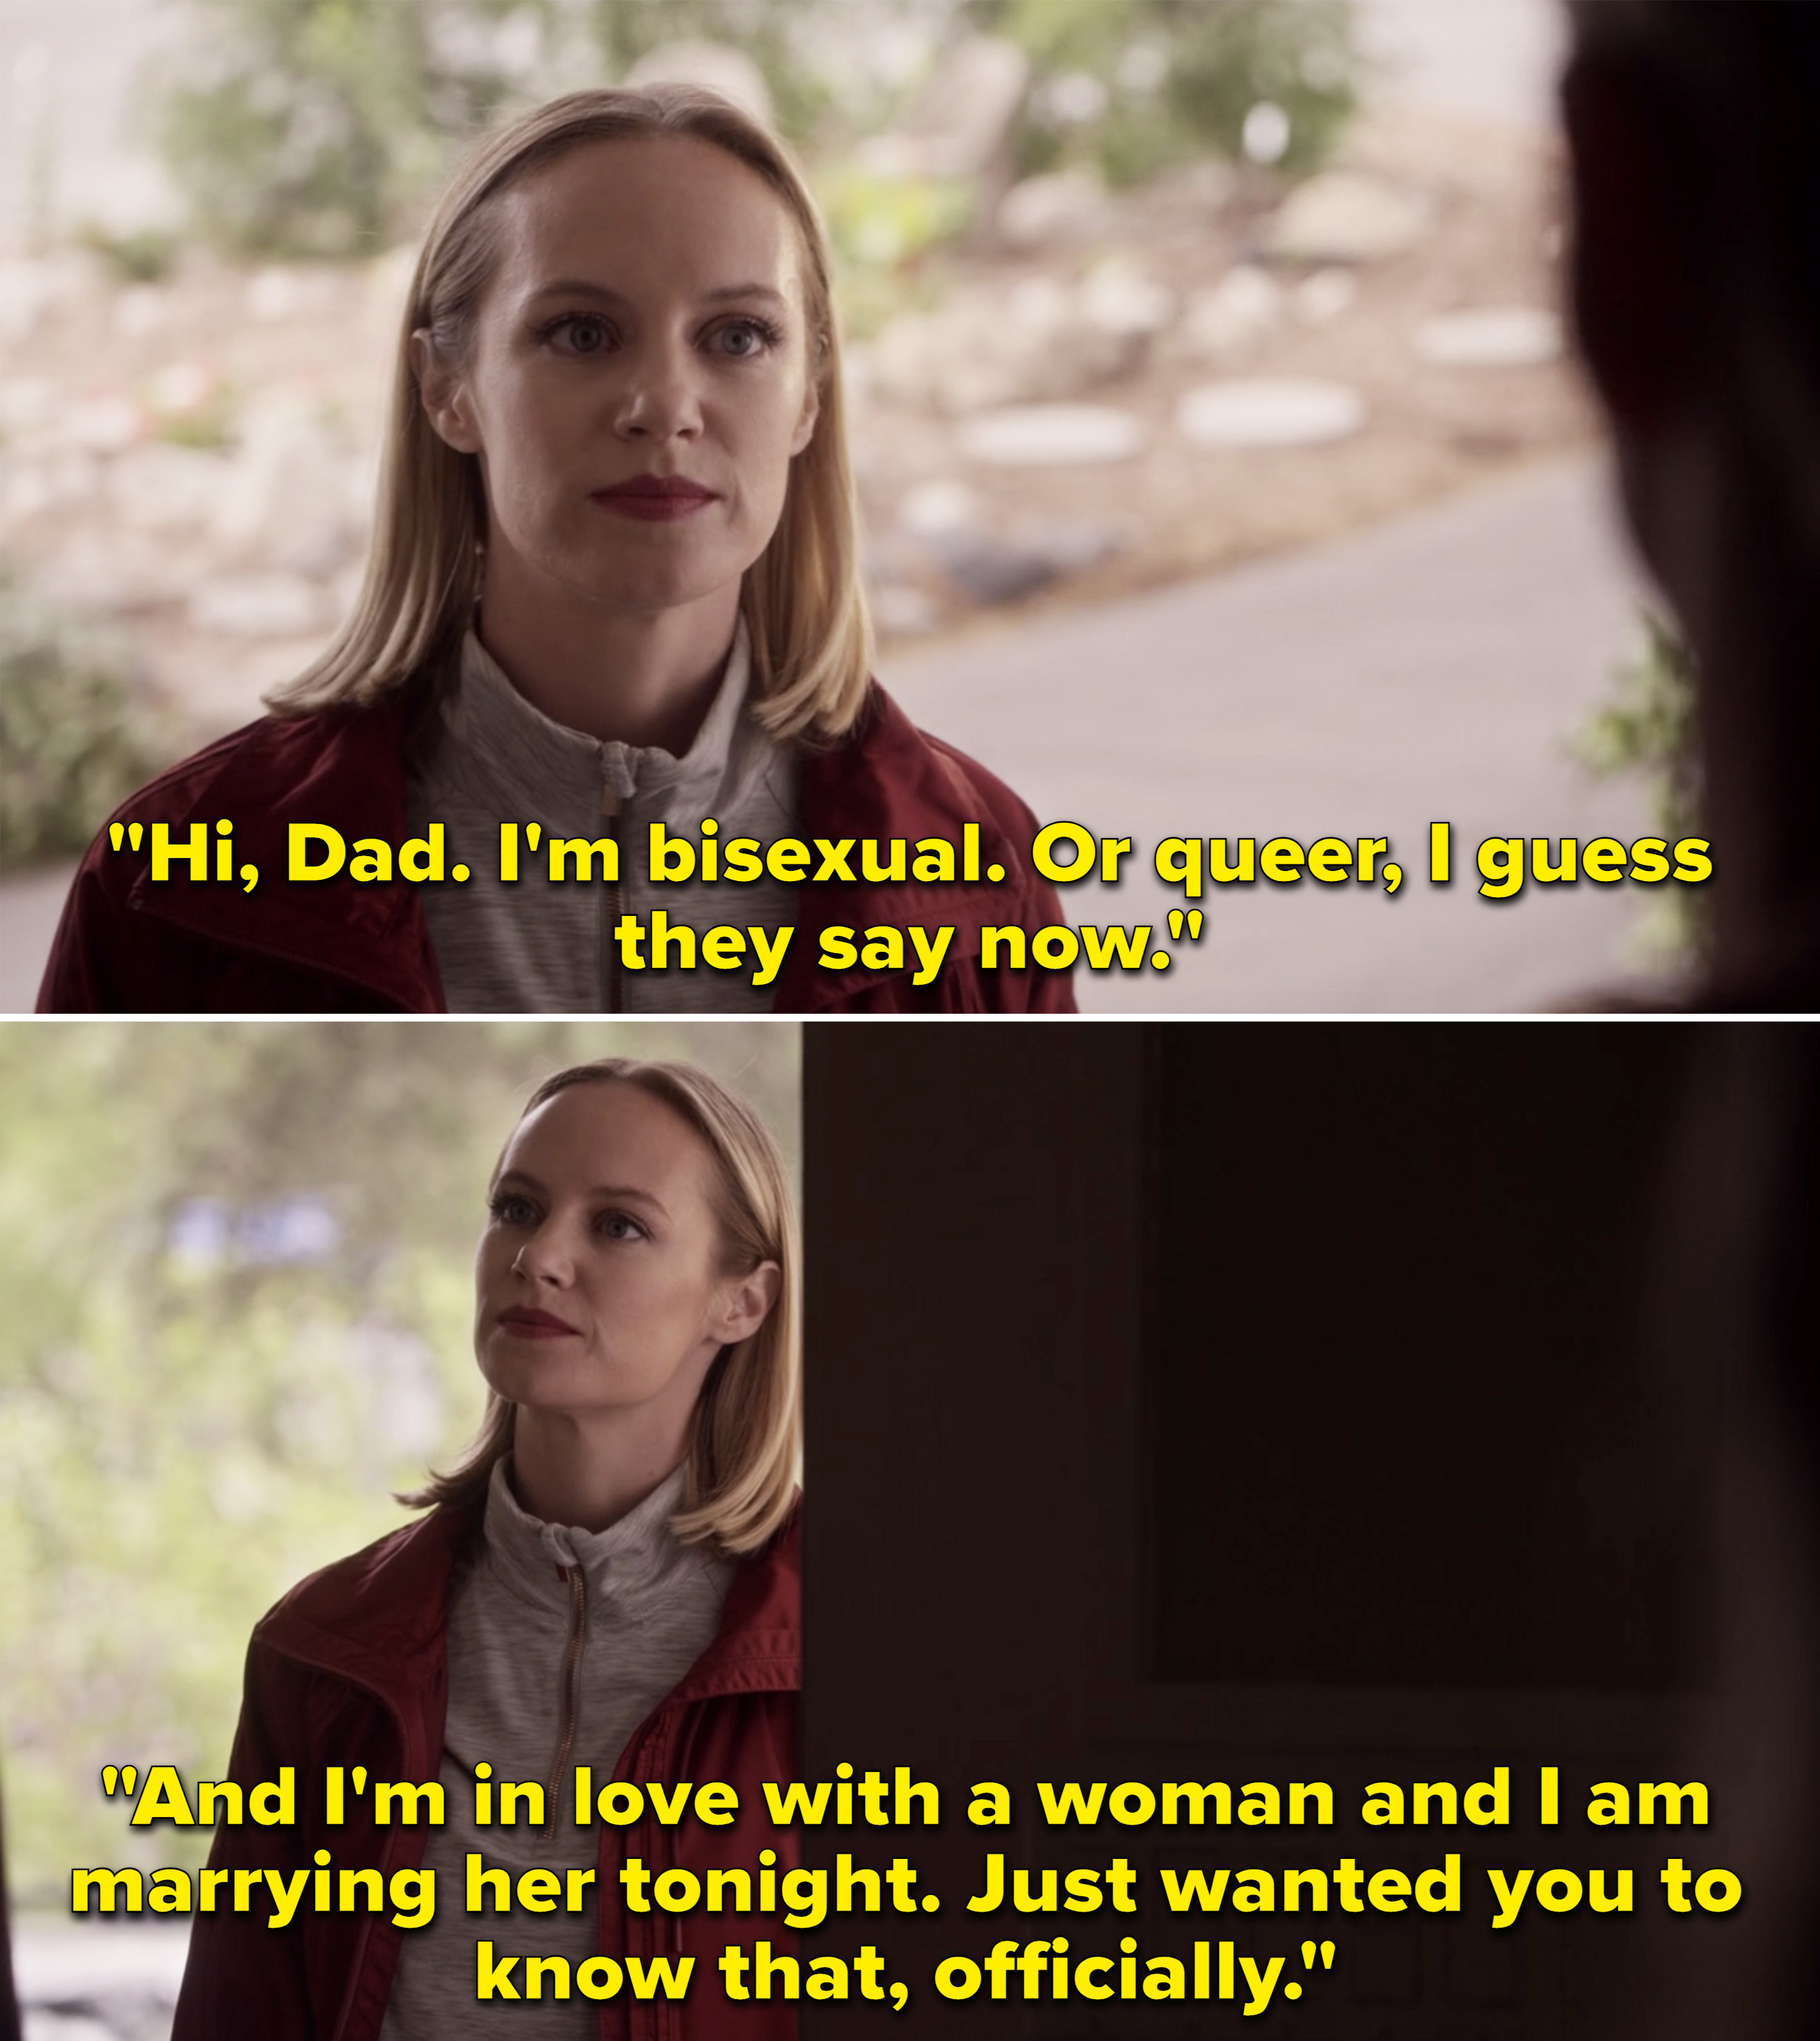 """Maya saying, """"Hi, Dad. I'm bisexual. Or queer, I guess they say now. And I'm in love with a woman and I am marrying her tonight"""""""